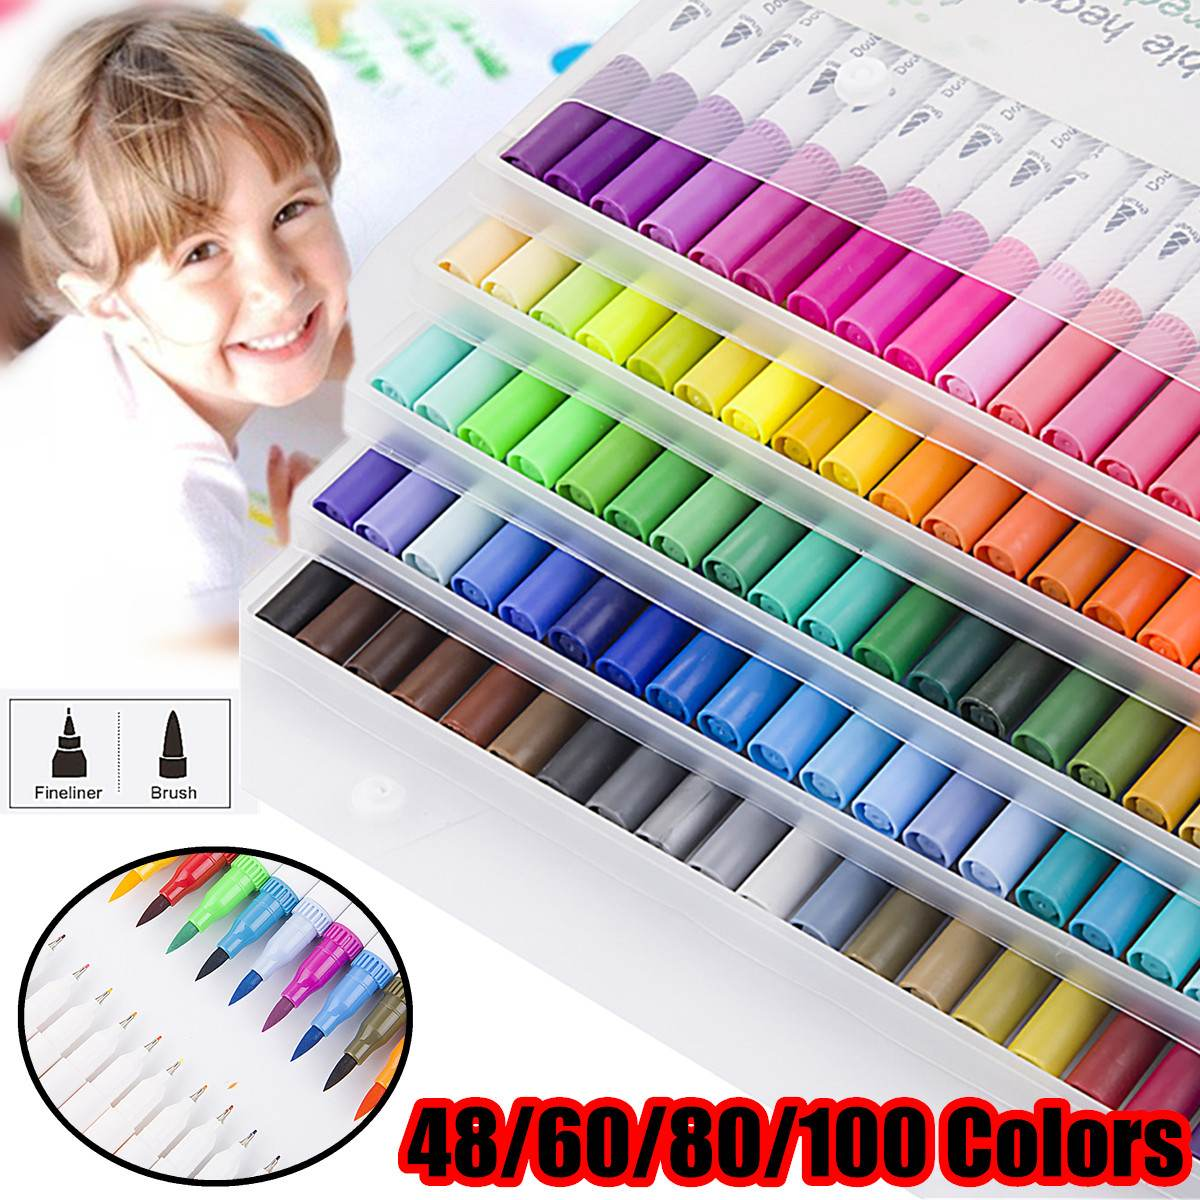 Us 12 19 40 Off 100 Colors Dual Tip Brush Color Pen Art Markers Pen Touchfive Copic Markers Pen Watercolor Fineliner Drawing Painting Stationery On